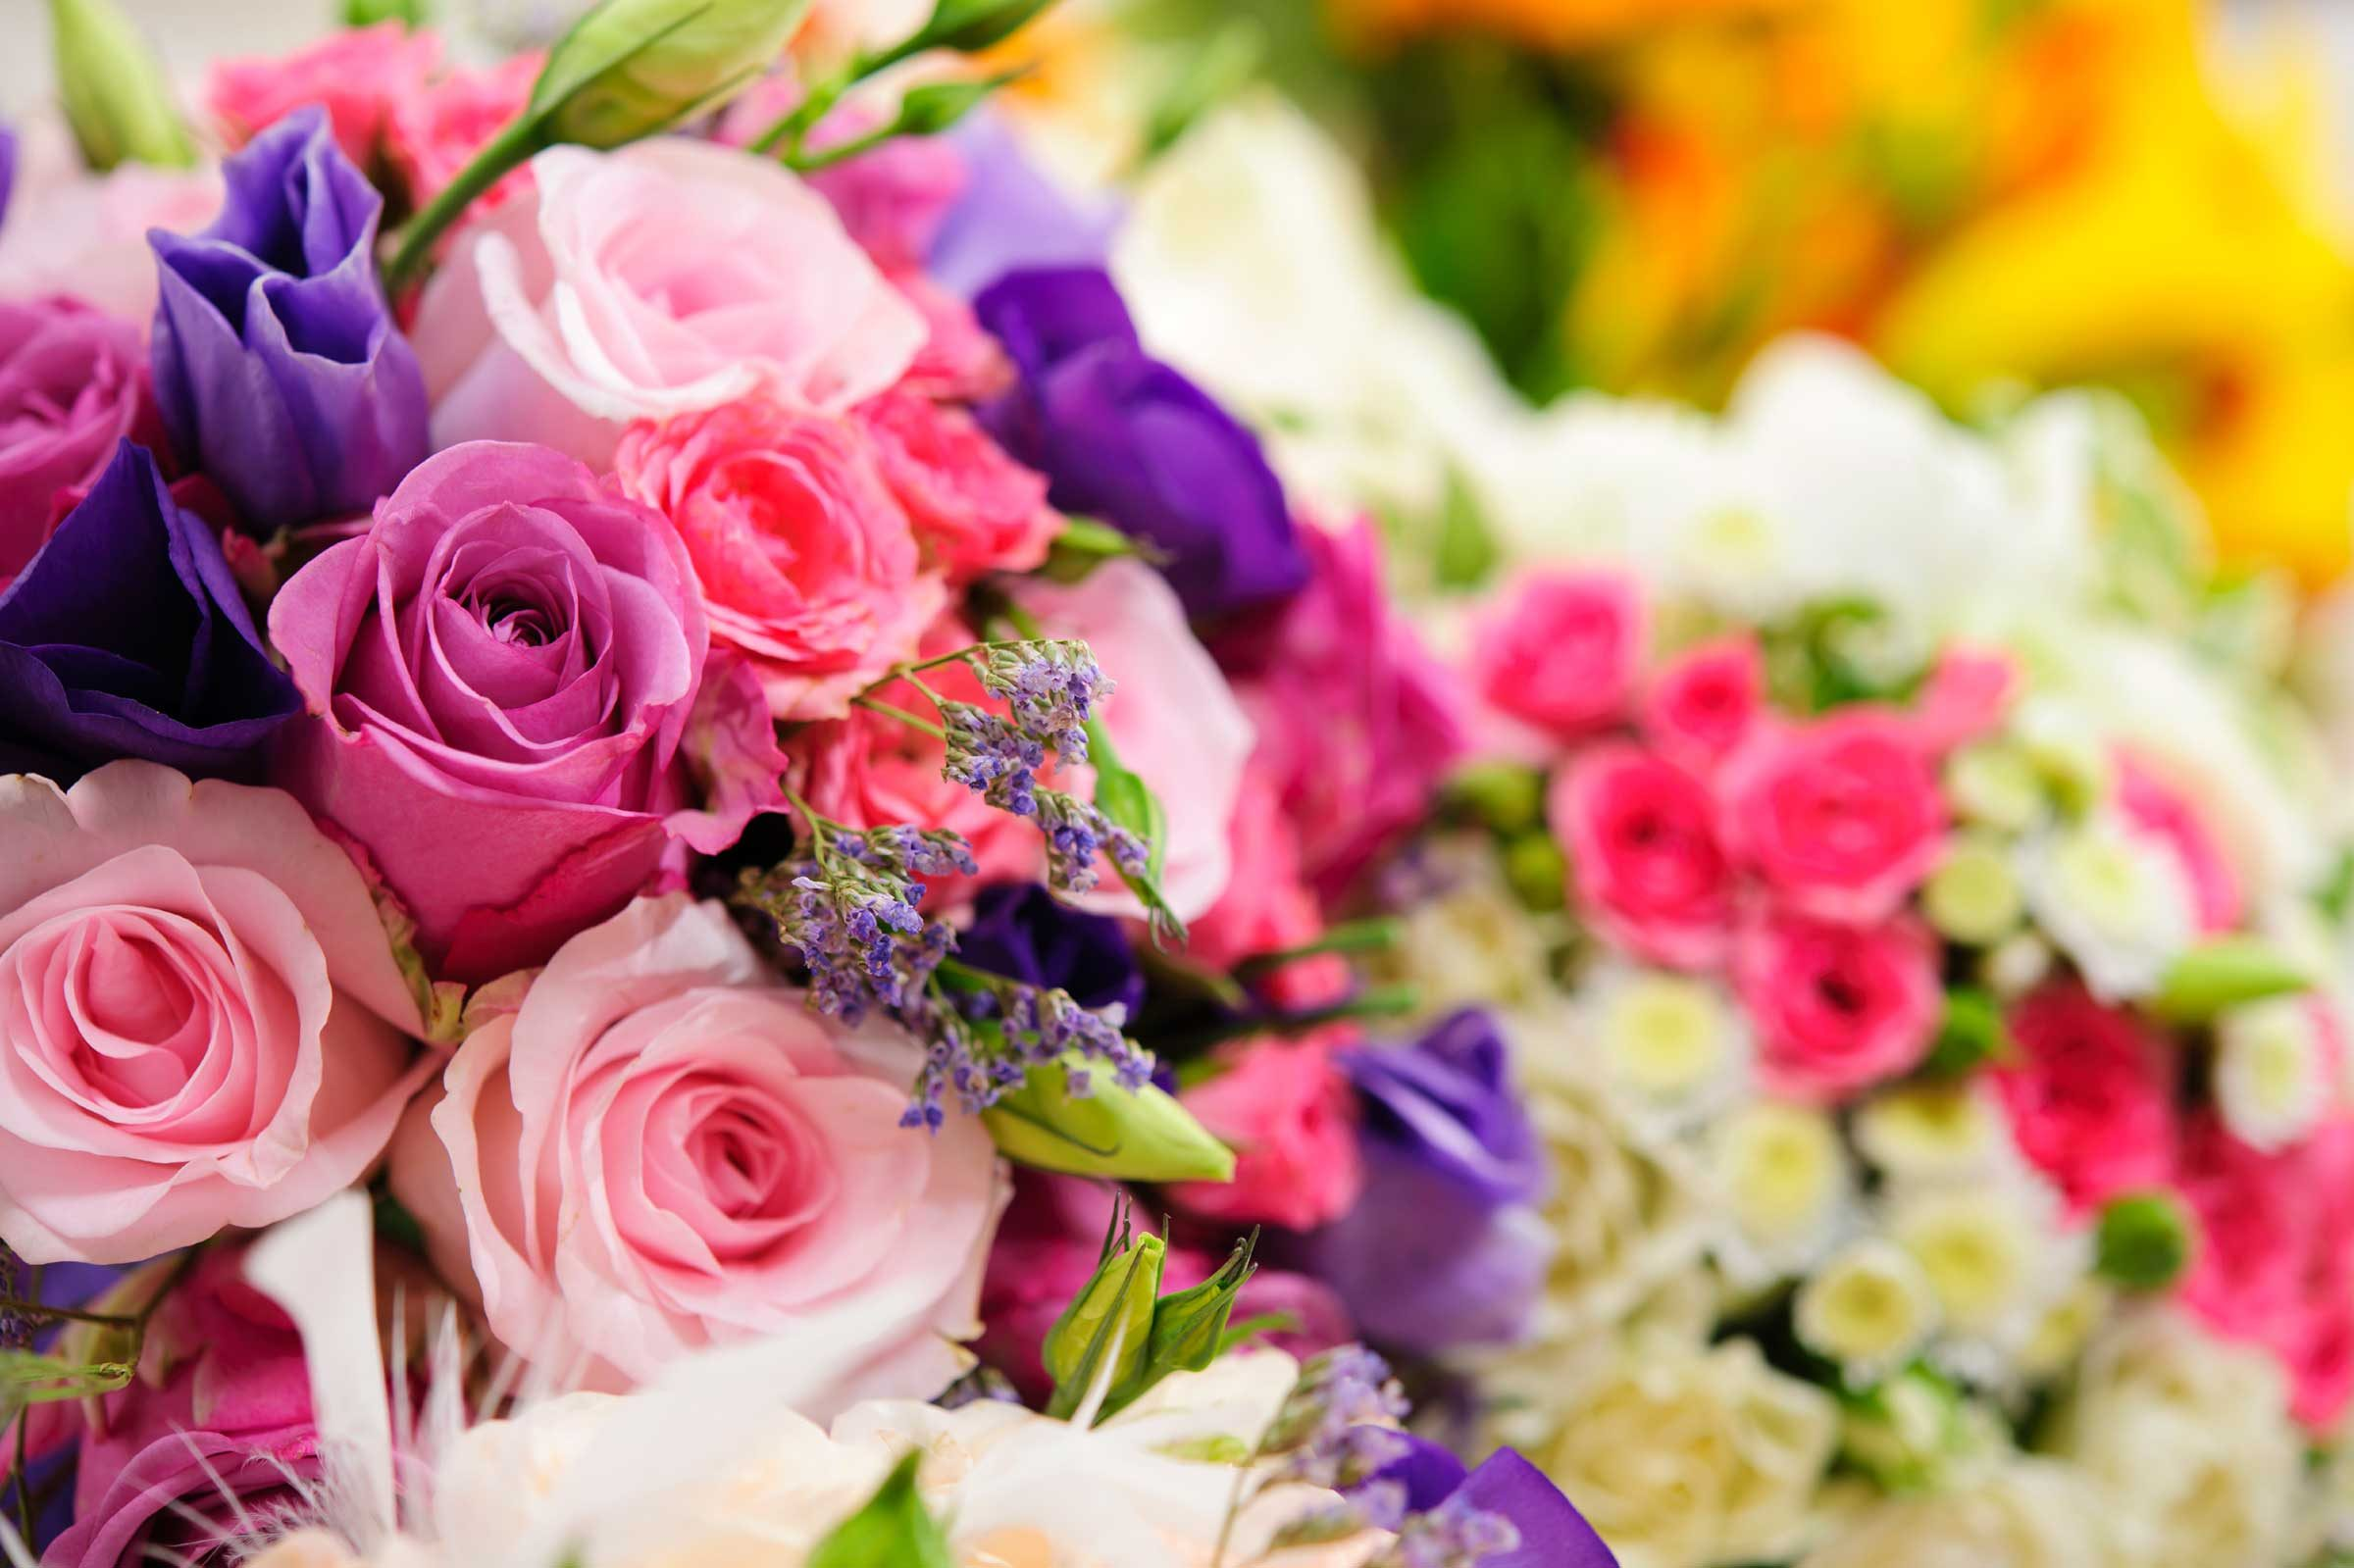 13 things your florist wont tell you readers digest looking for a way to jazz up your red roses dhlflorist Image collections